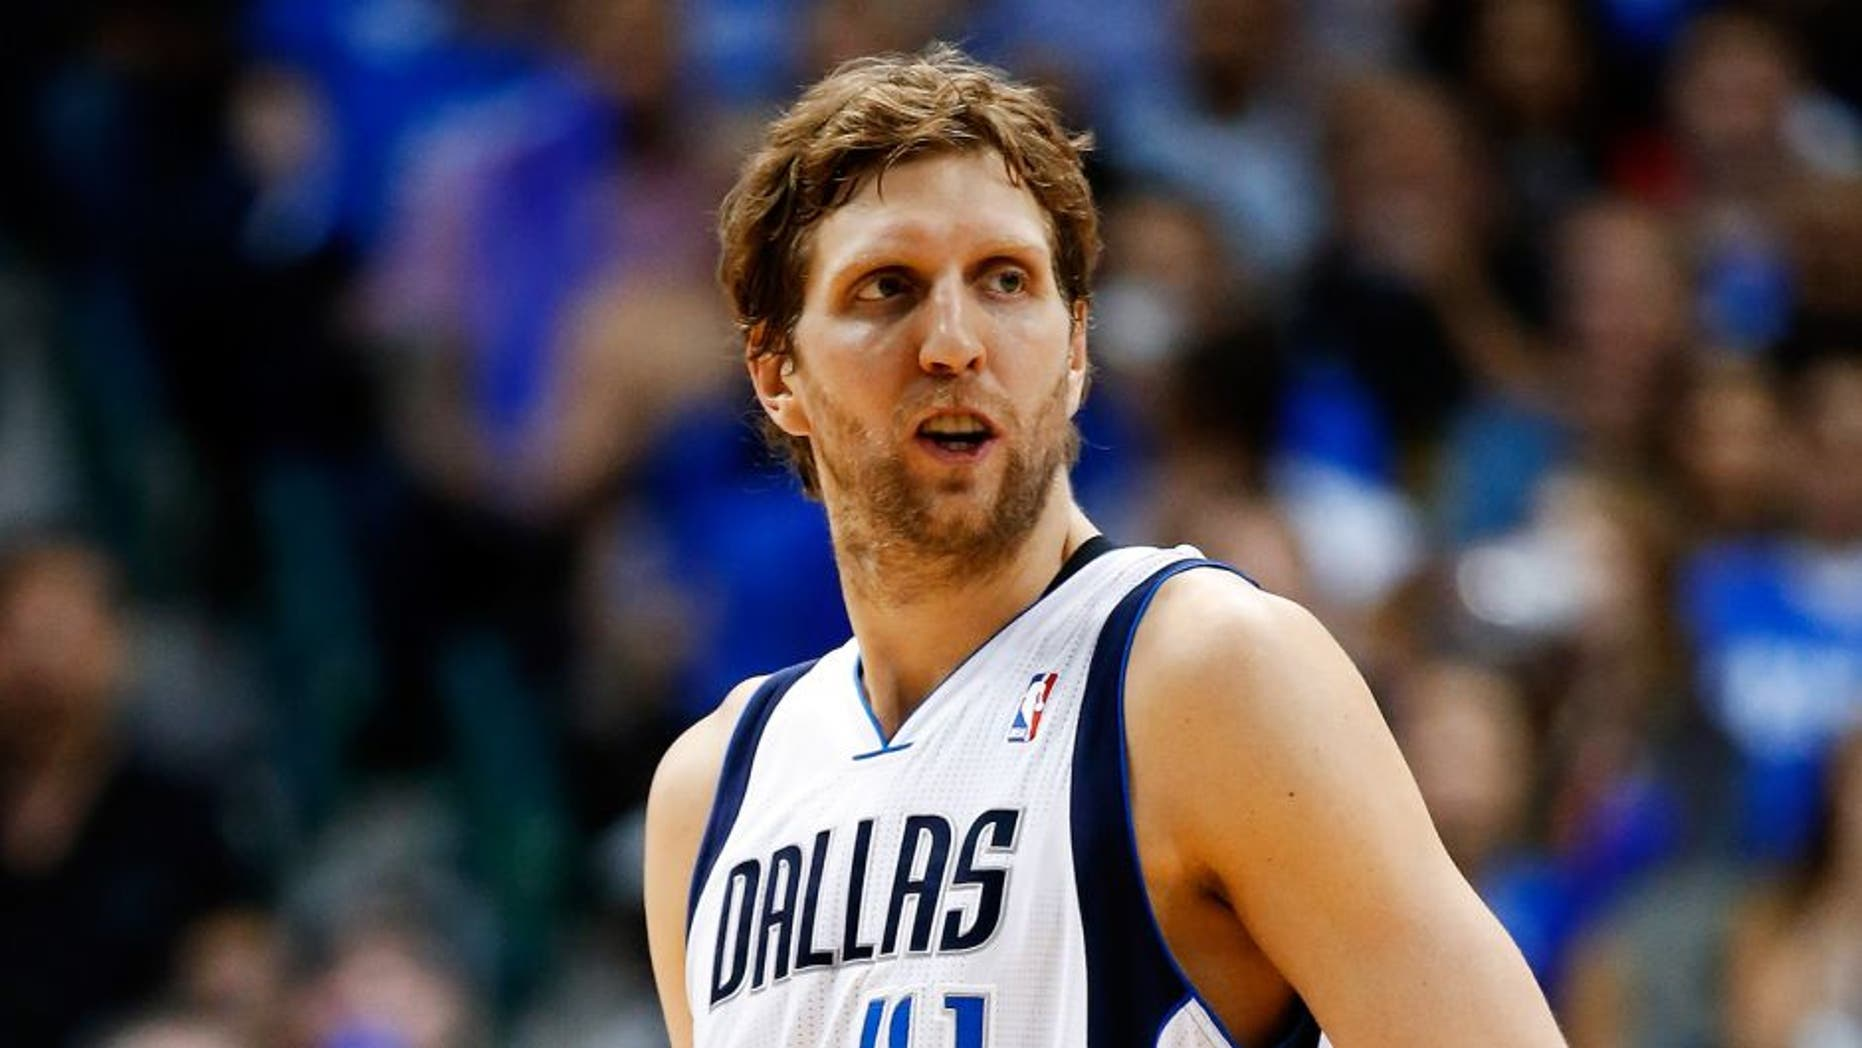 May 2, 2014; Dallas, TX, USA; Dallas Mavericks forward Dirk Nowitzki (41) during the game against the San Antonio Spurs in game six of the first round of the 2014 NBA Playoffs at American Airlines Center. Dallas won 113-111. Mandatory Credit: Kevin Jairaj-USA TODAY Sports